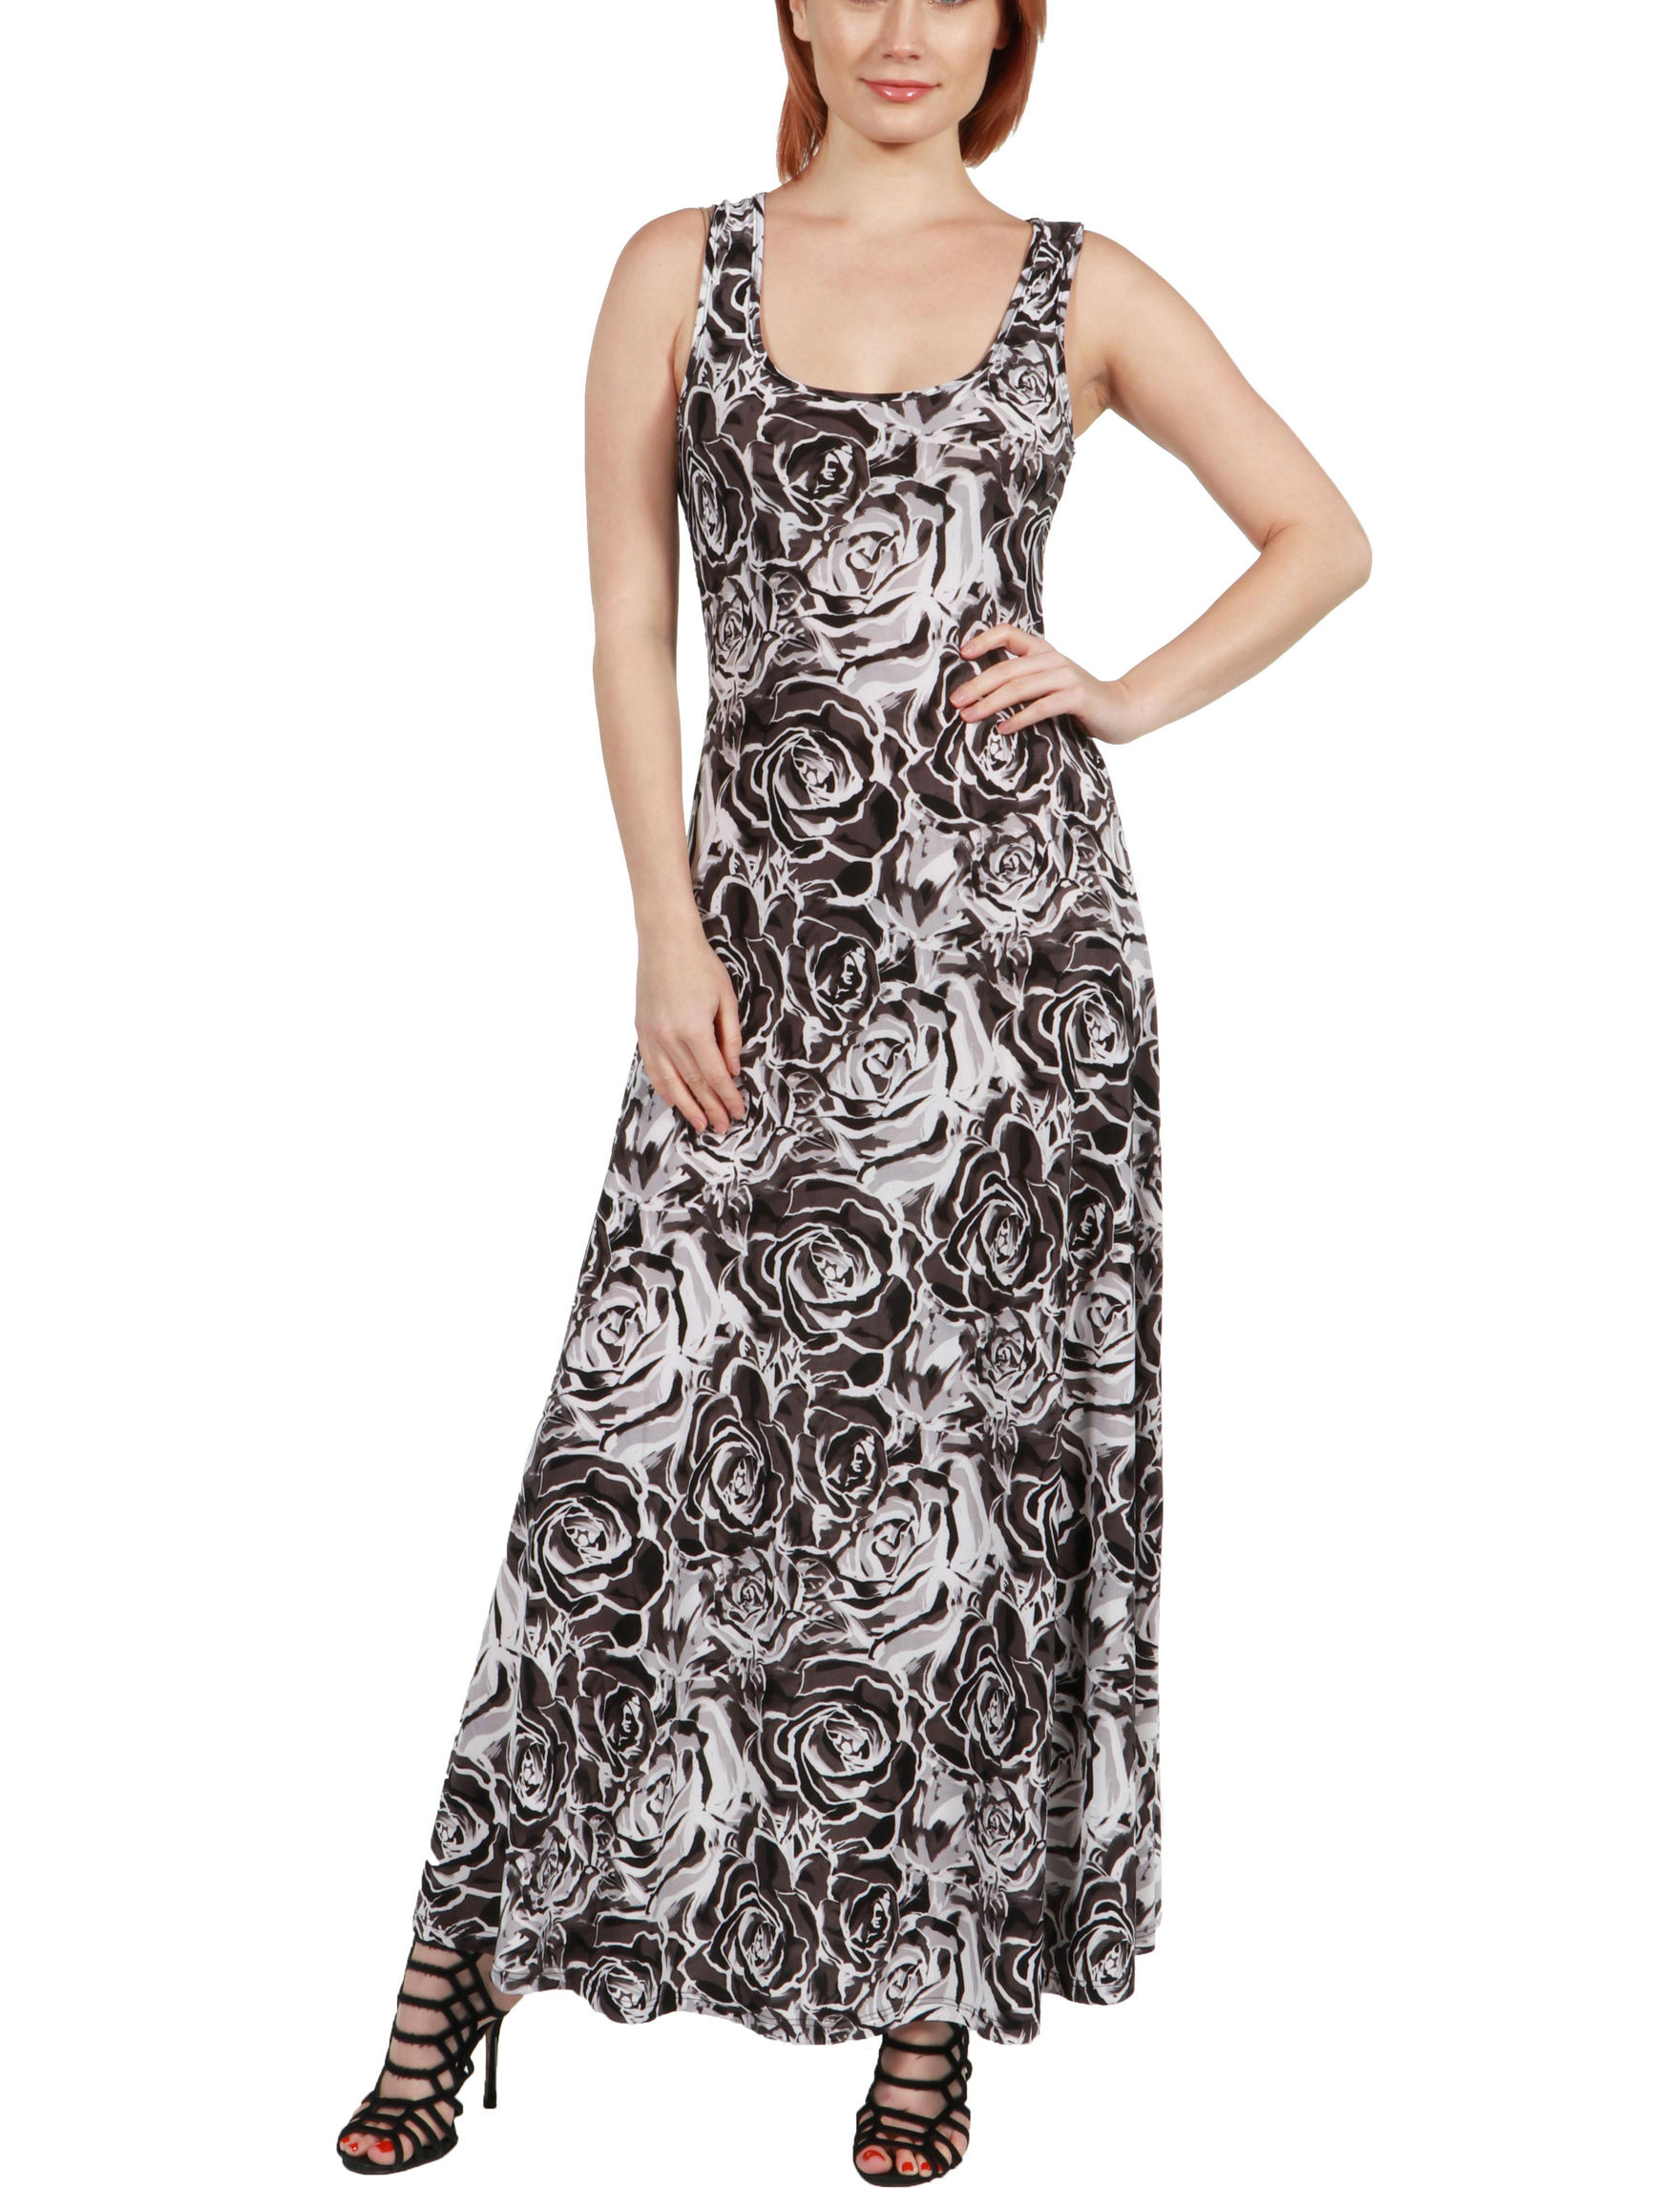 24Seven Comfort Apparel Brown Multi Everyday & Casual Sundresses